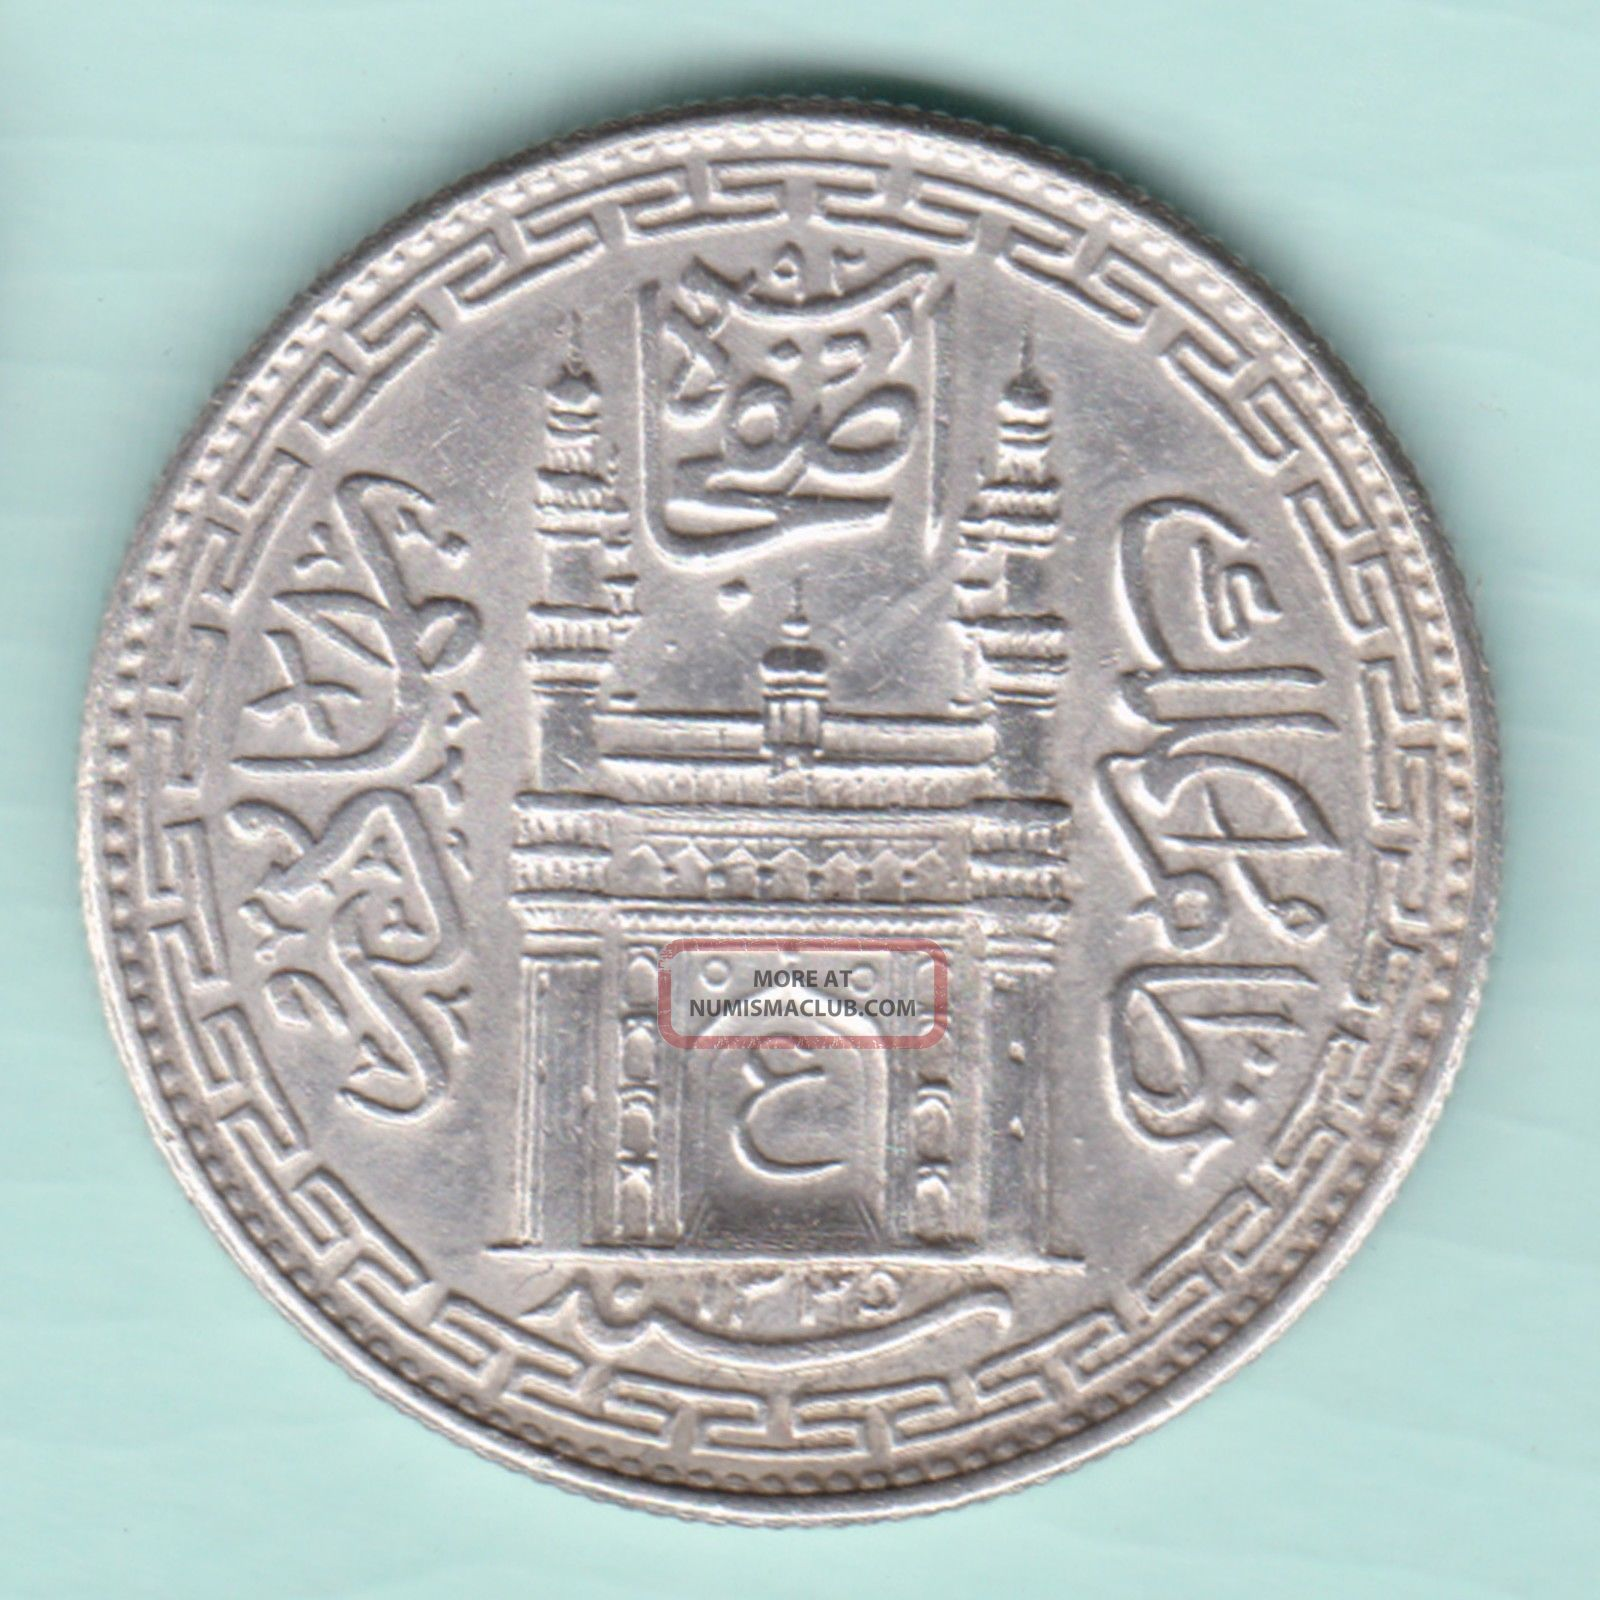 Hyderabad State - Ah1335 - Ain On Doorway - One Rupee - Rarest Silver Coin India photo